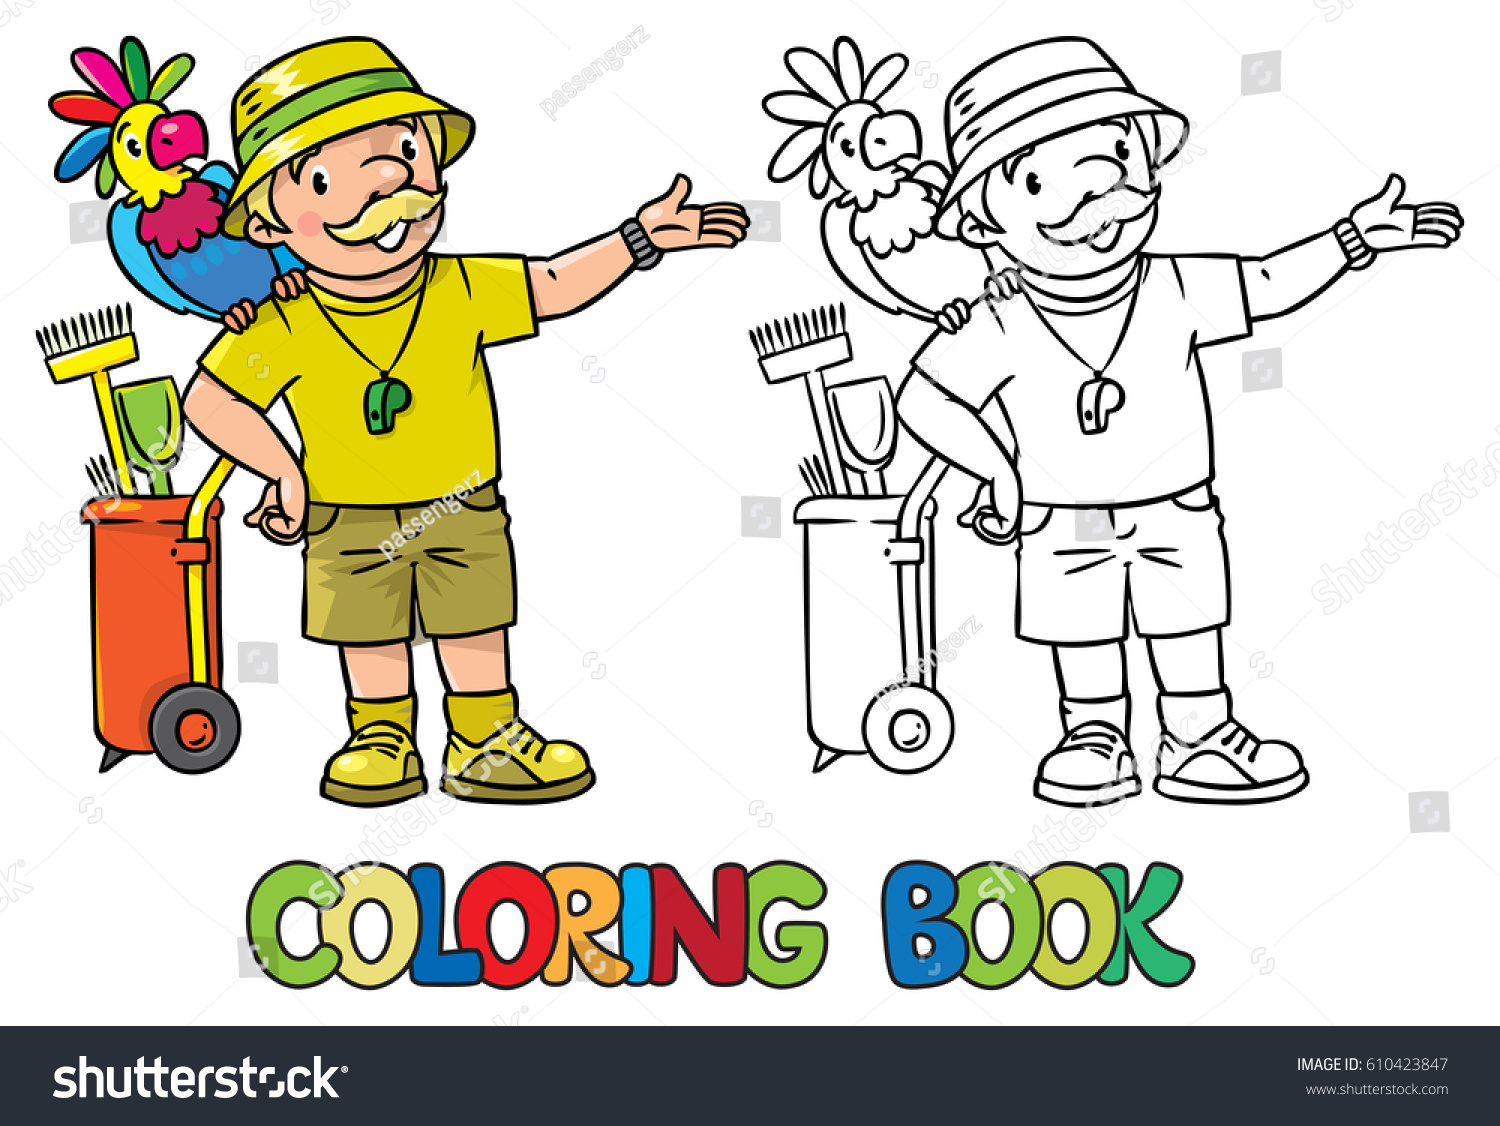 The zoology coloring book - Coloring Book Of Funny Zoo Keeper With Parrot